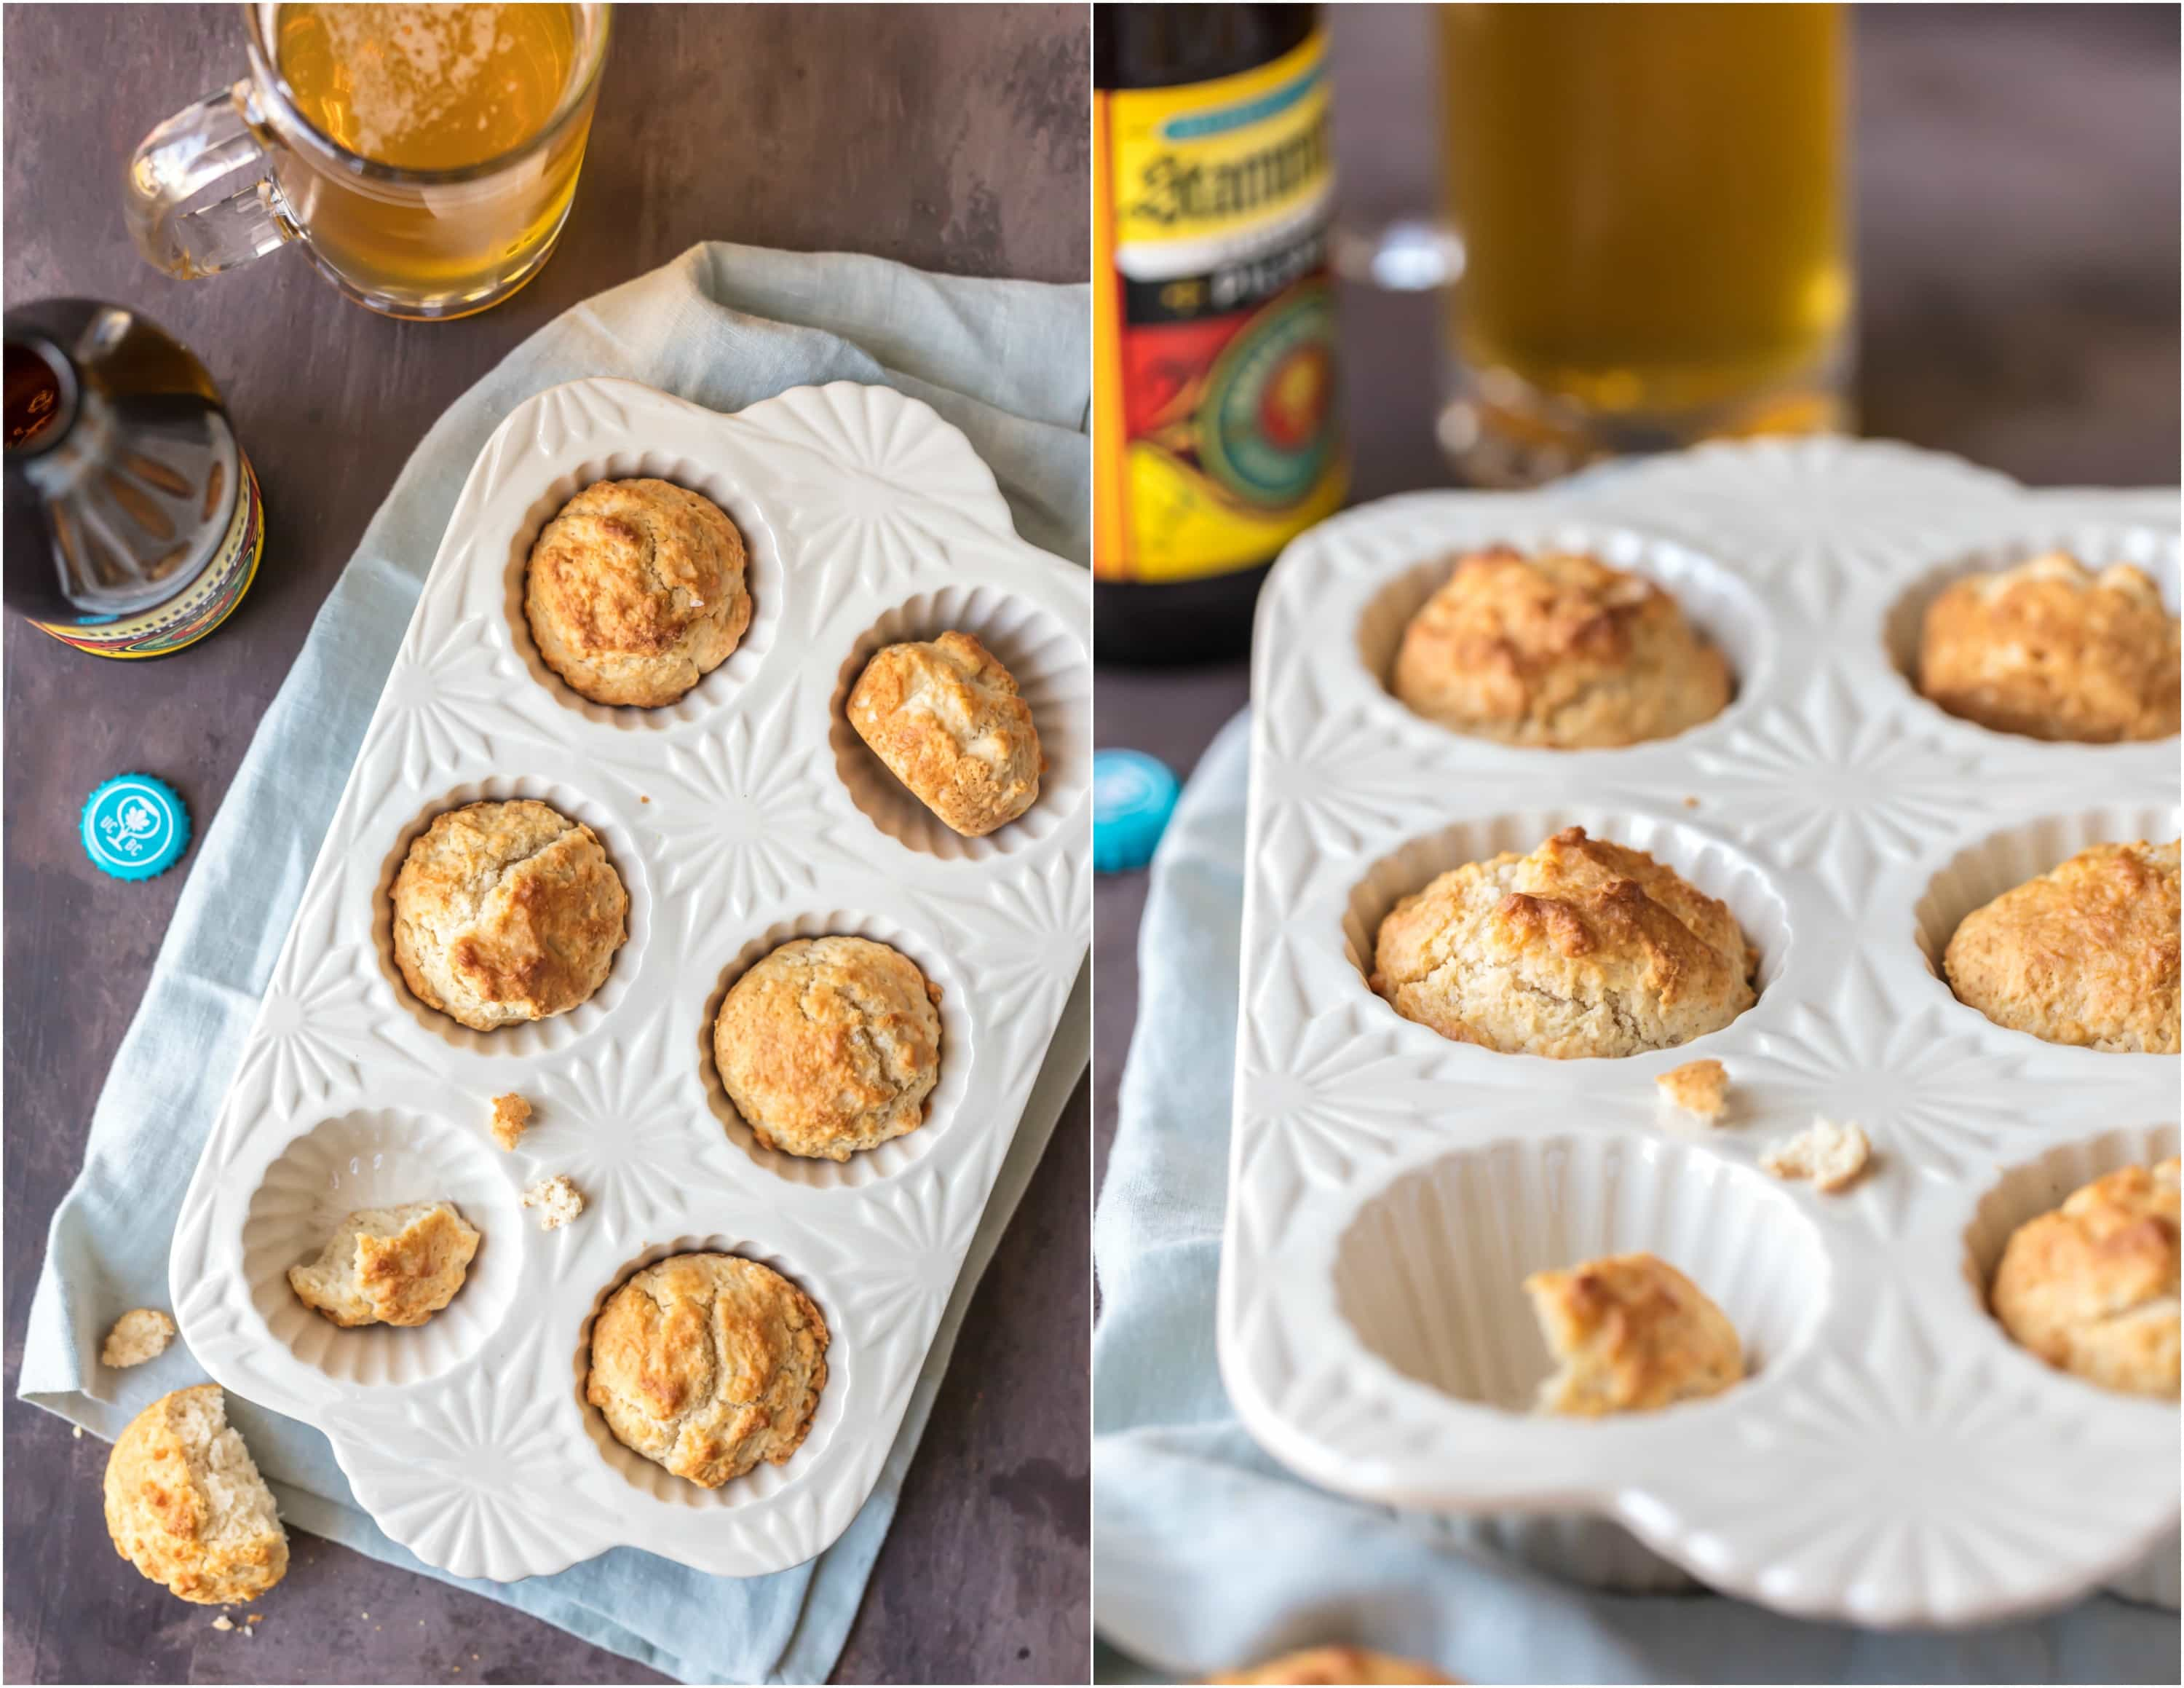 BEER BREAD MUFFINS, my absolute favorite easy bread recipe! These fun little muffins taste like a comforting loaf of beer bread. They're the ultimate addition to any meal, especially Thanksgiving!